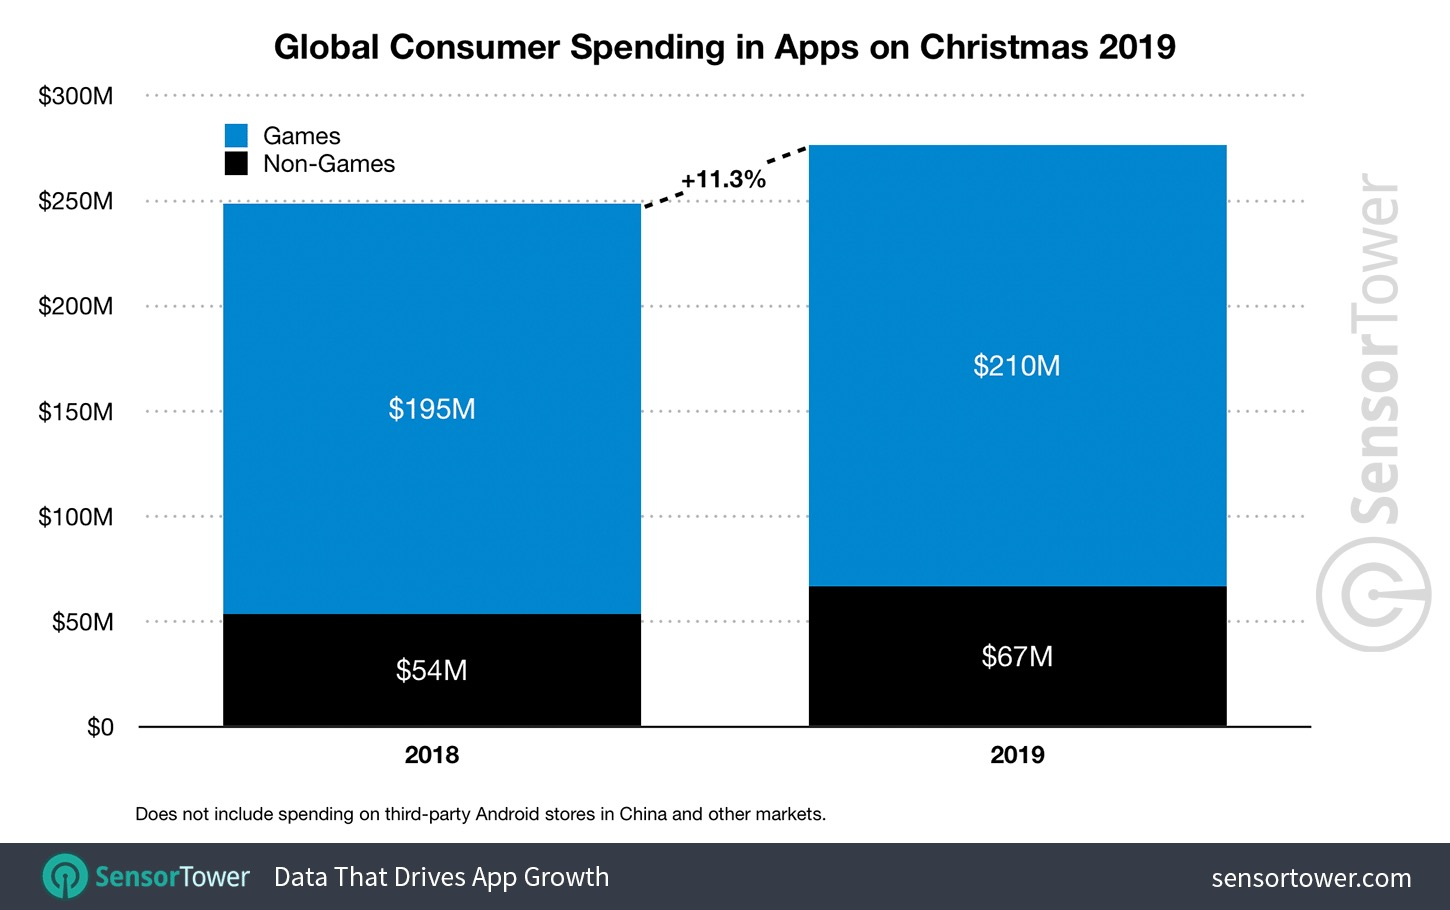 https://images.macrumors.com/article-new/2020/01/christmas-2019-app-revenue-worldwide-sensor-tower.jpg